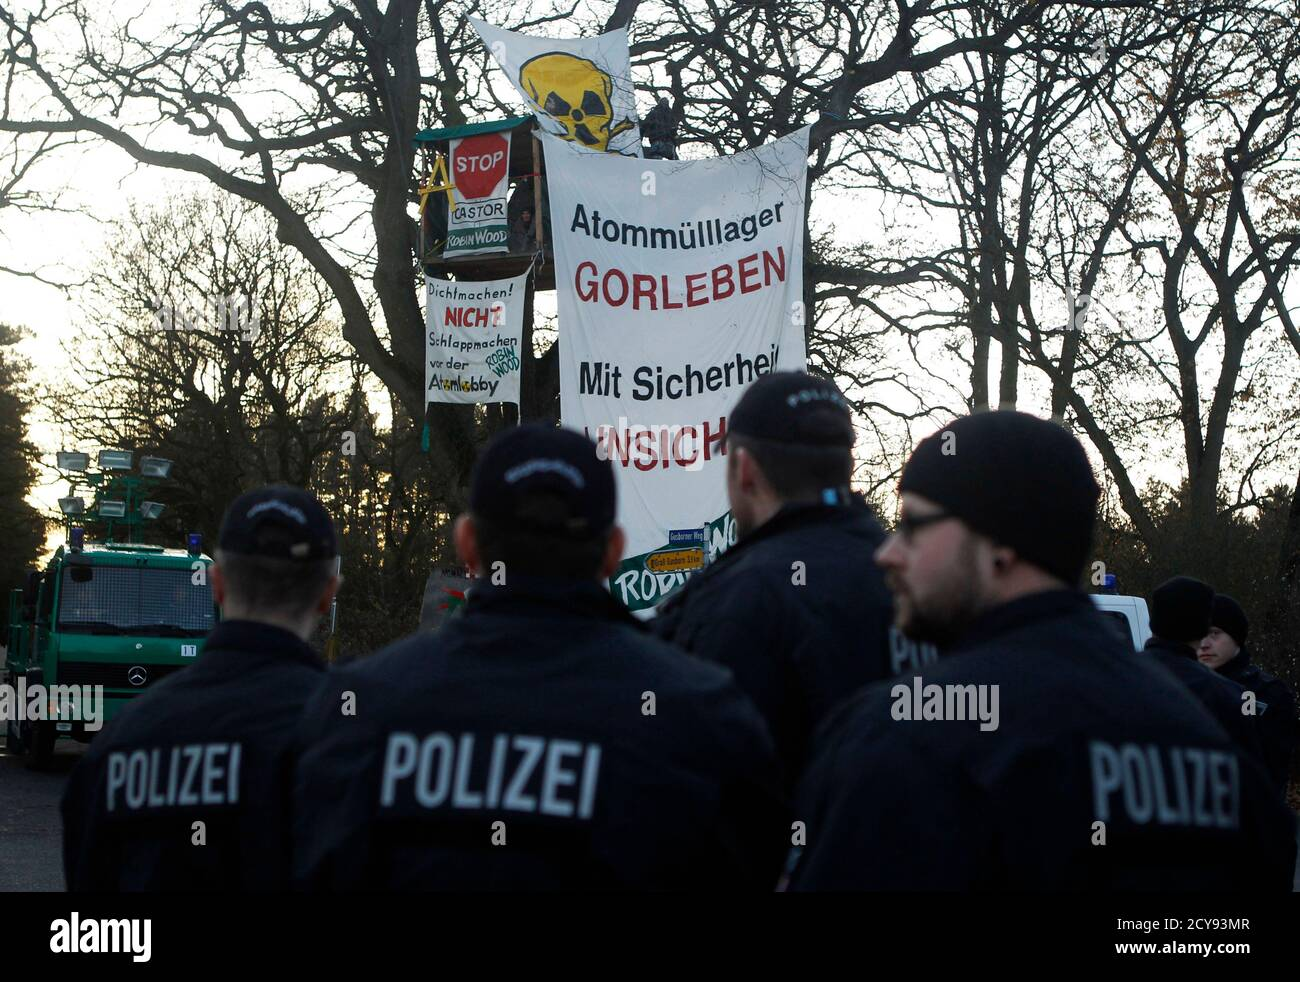 """An activist from the environmental organization Robin Wood observes the police from his tree house in Langendorf near Gorleben November 28, 2011. The controversial shipment of 11 Castor containers with spent German nuclear fuel reprocessed in France, will be loaded onto trucks in Dannenberg before its final transportation to the nearby intermediate storage facility in the northern Germany village of Gorleben. The banner reads: """"Radioactive waste storage Gorleben is not safe"""". REUTERS/Alex Domanski (GERMANY - Tags: ENVIRONMENT POLITICS CIVIL UNREST) Banque D'Images"""